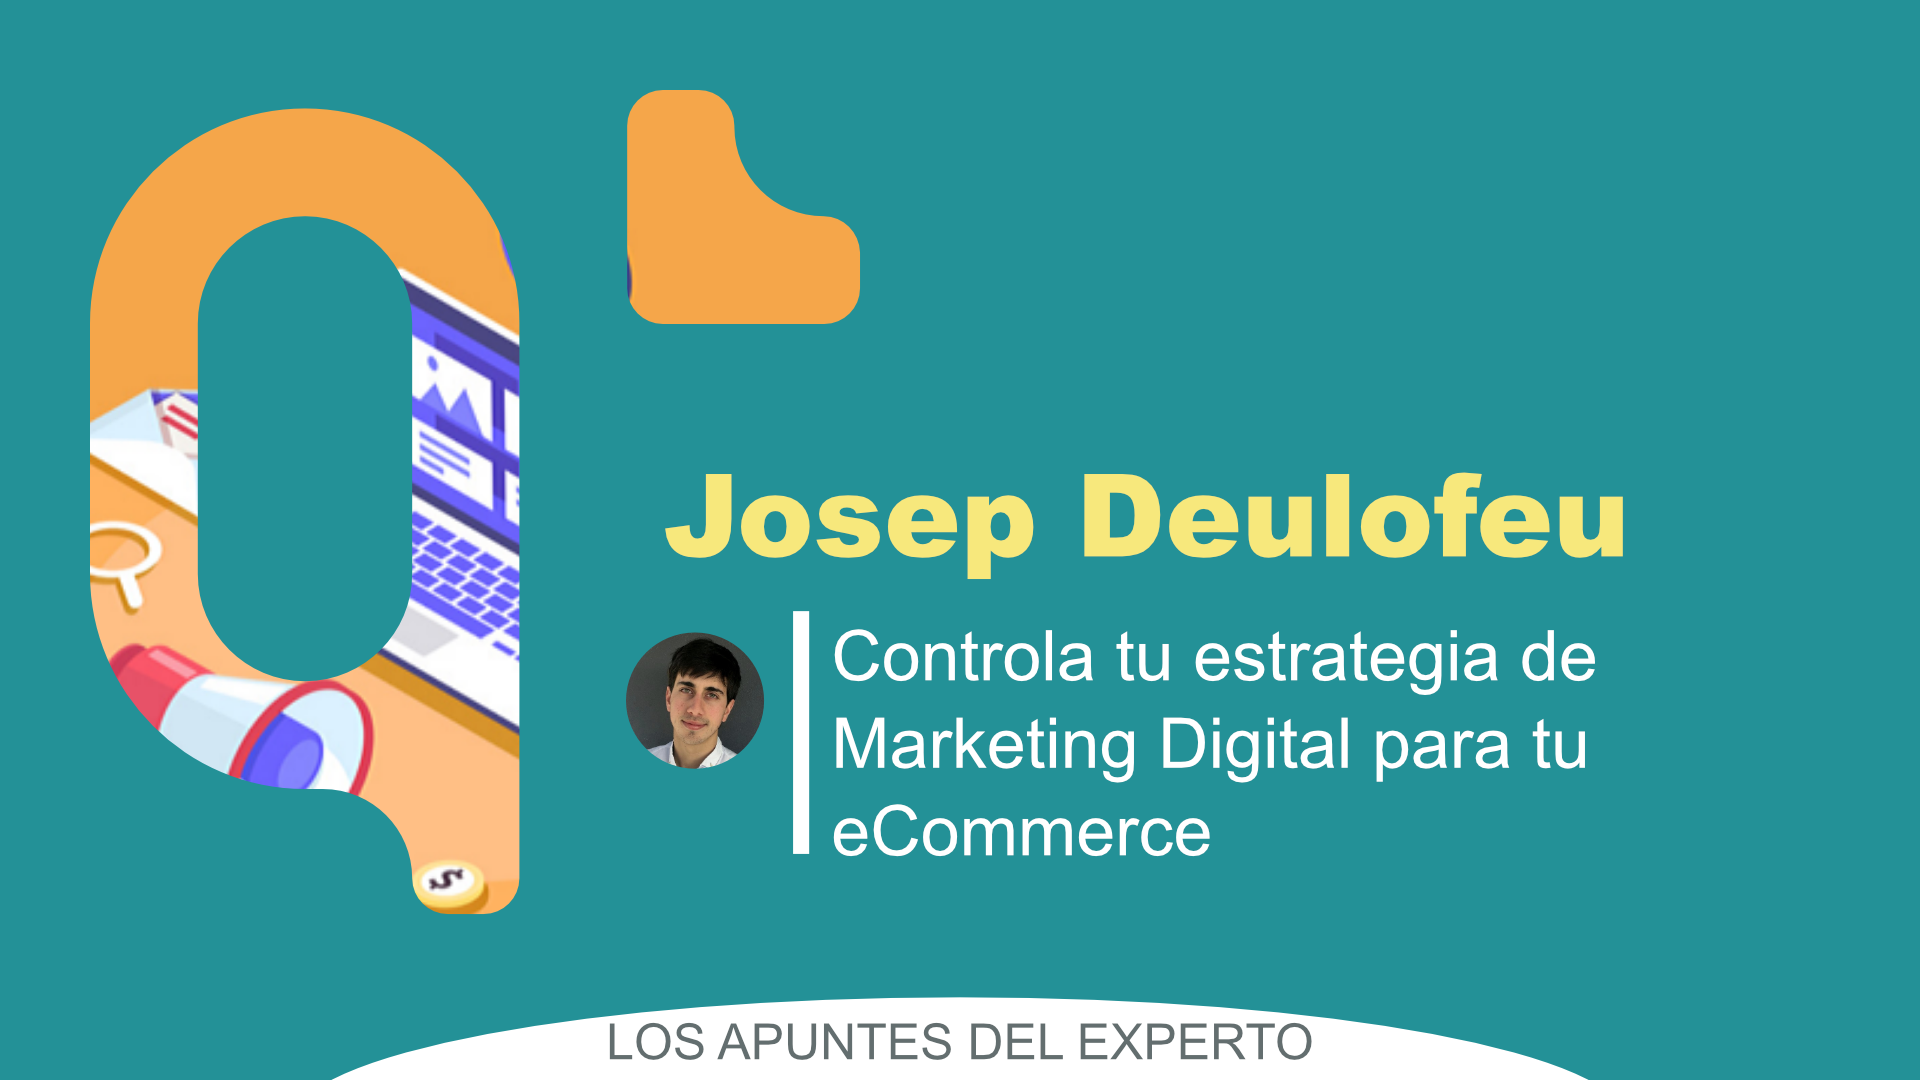 Controla tu estrategia de Marketing Digital para tu eCommerce de forma eficiente